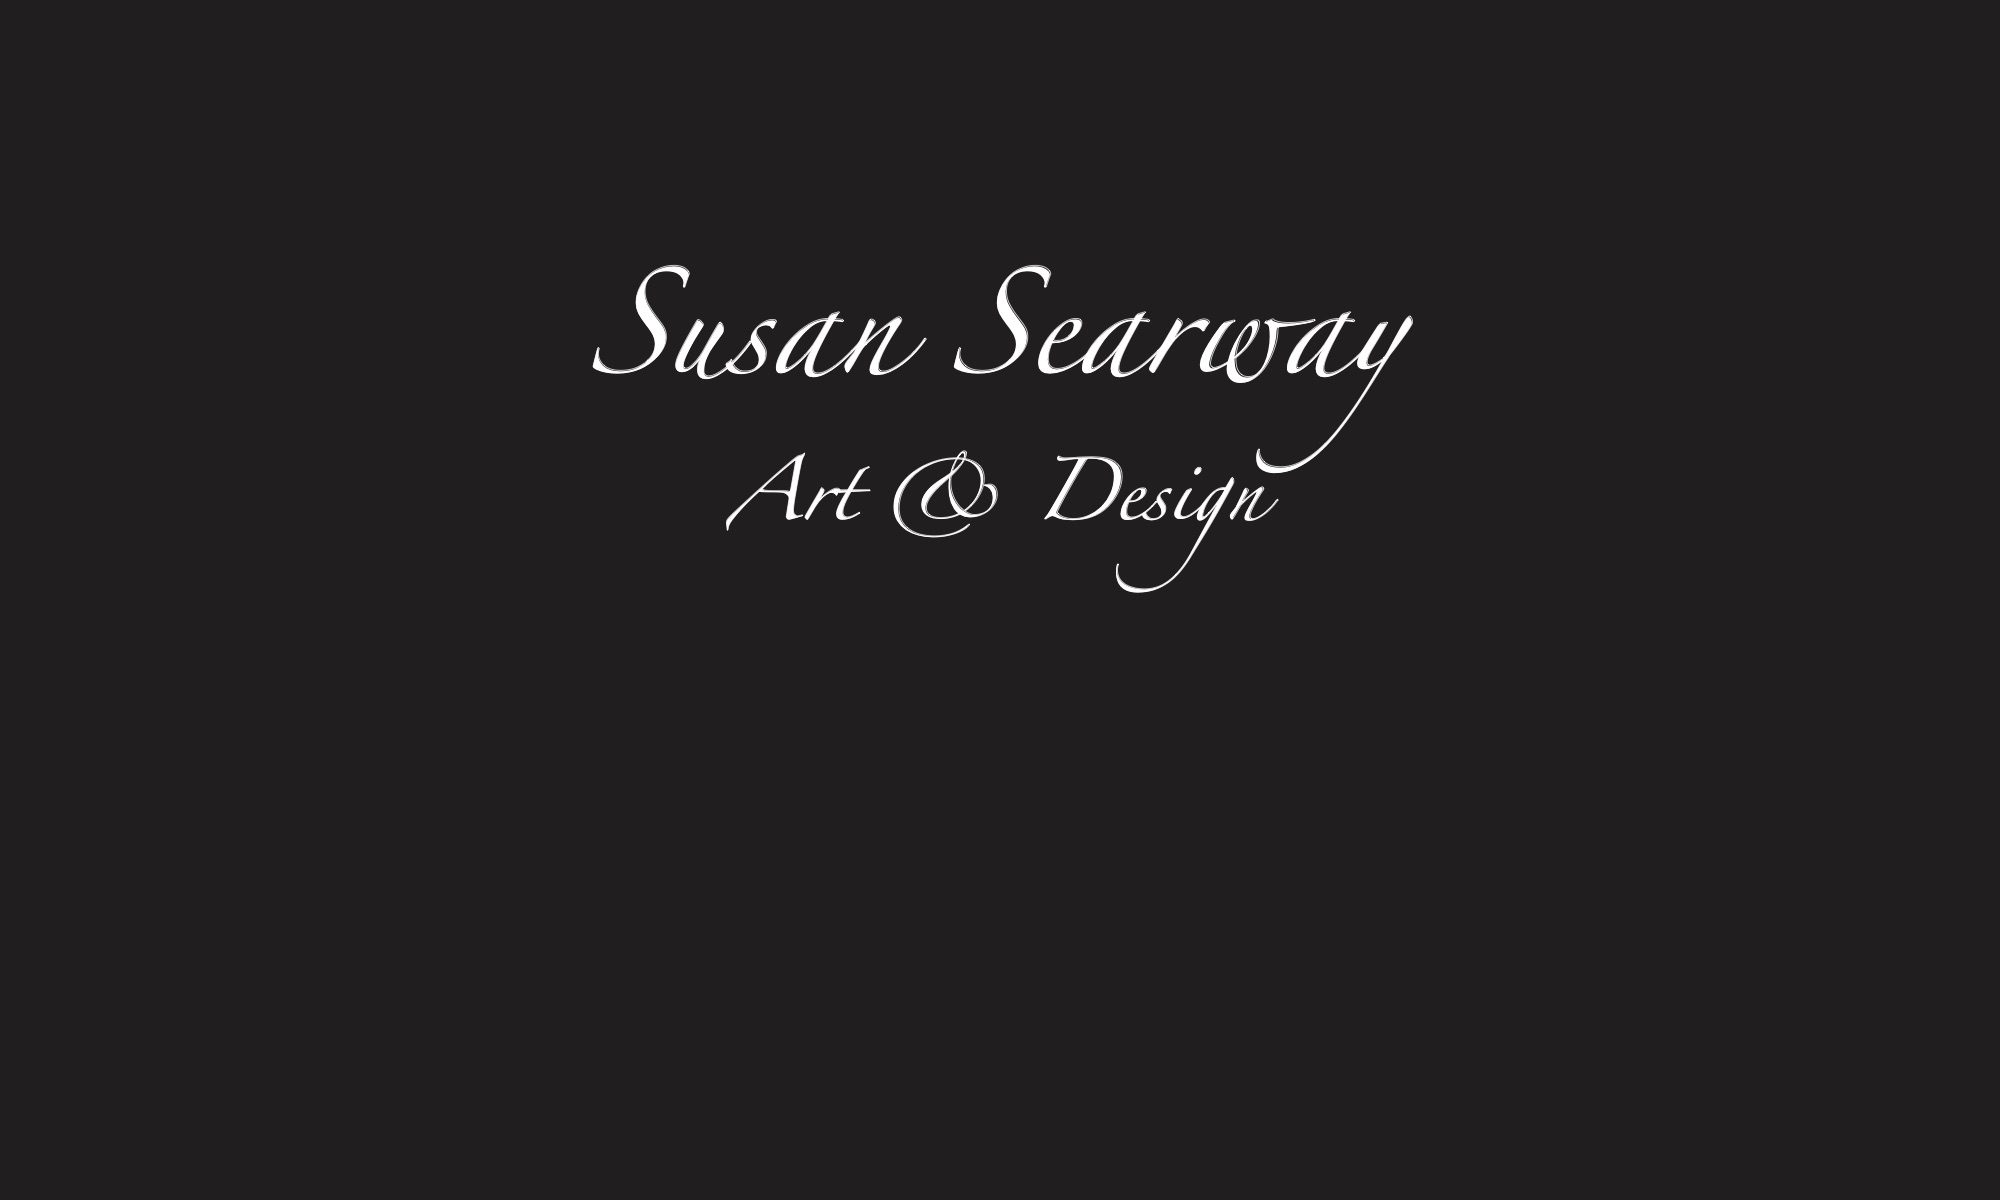 Susan Searway Art and Design